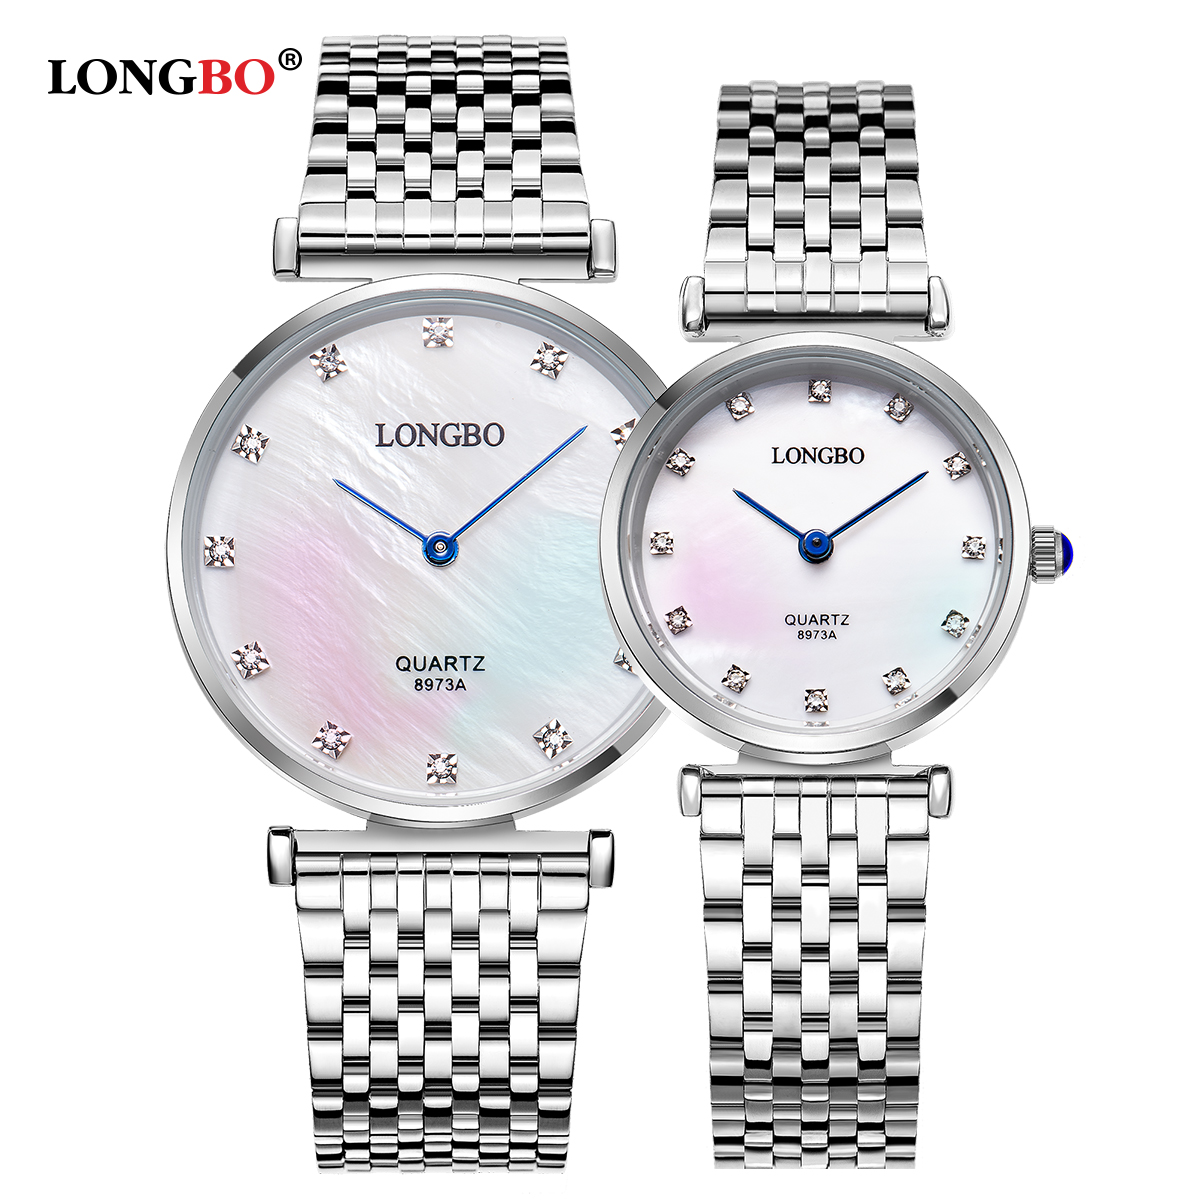 Fashion LONGBO LuxuryBrandClassic Couples Watches Business Style Lovers Men Women Lovers Clock Quartz Charms Analog Wristwatches